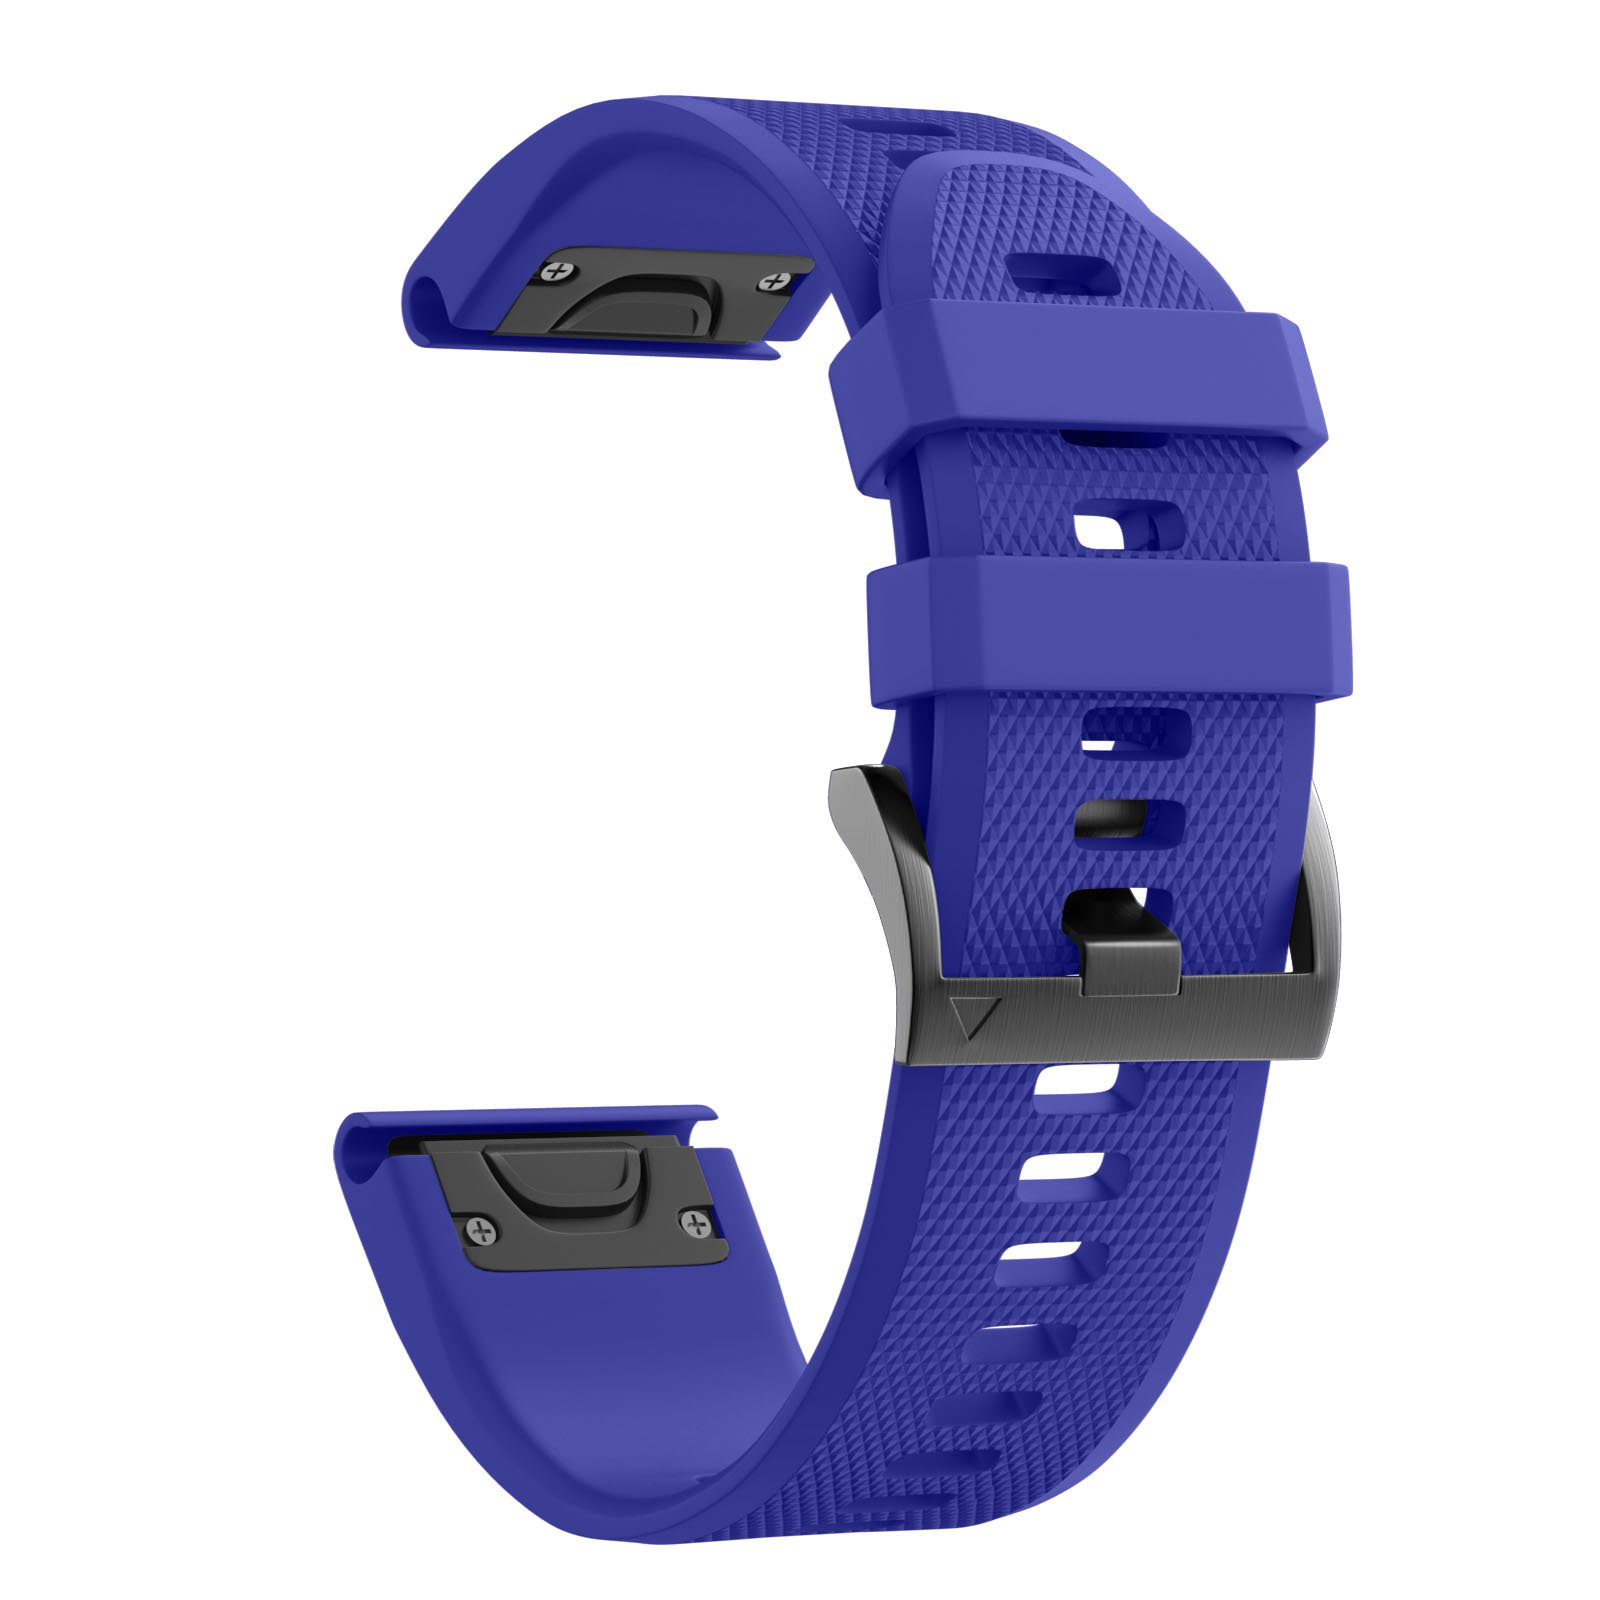 ANCOOL Compatible with Fenix 5 Band Easy Fit 22mm Width Soft Silicone Watch Strap Replacement for Garmin Fenix 5/Fenix 5 Plus/Forerunner 935/Approach S60/Quatix 5 - Royal Blue by ANCOOL